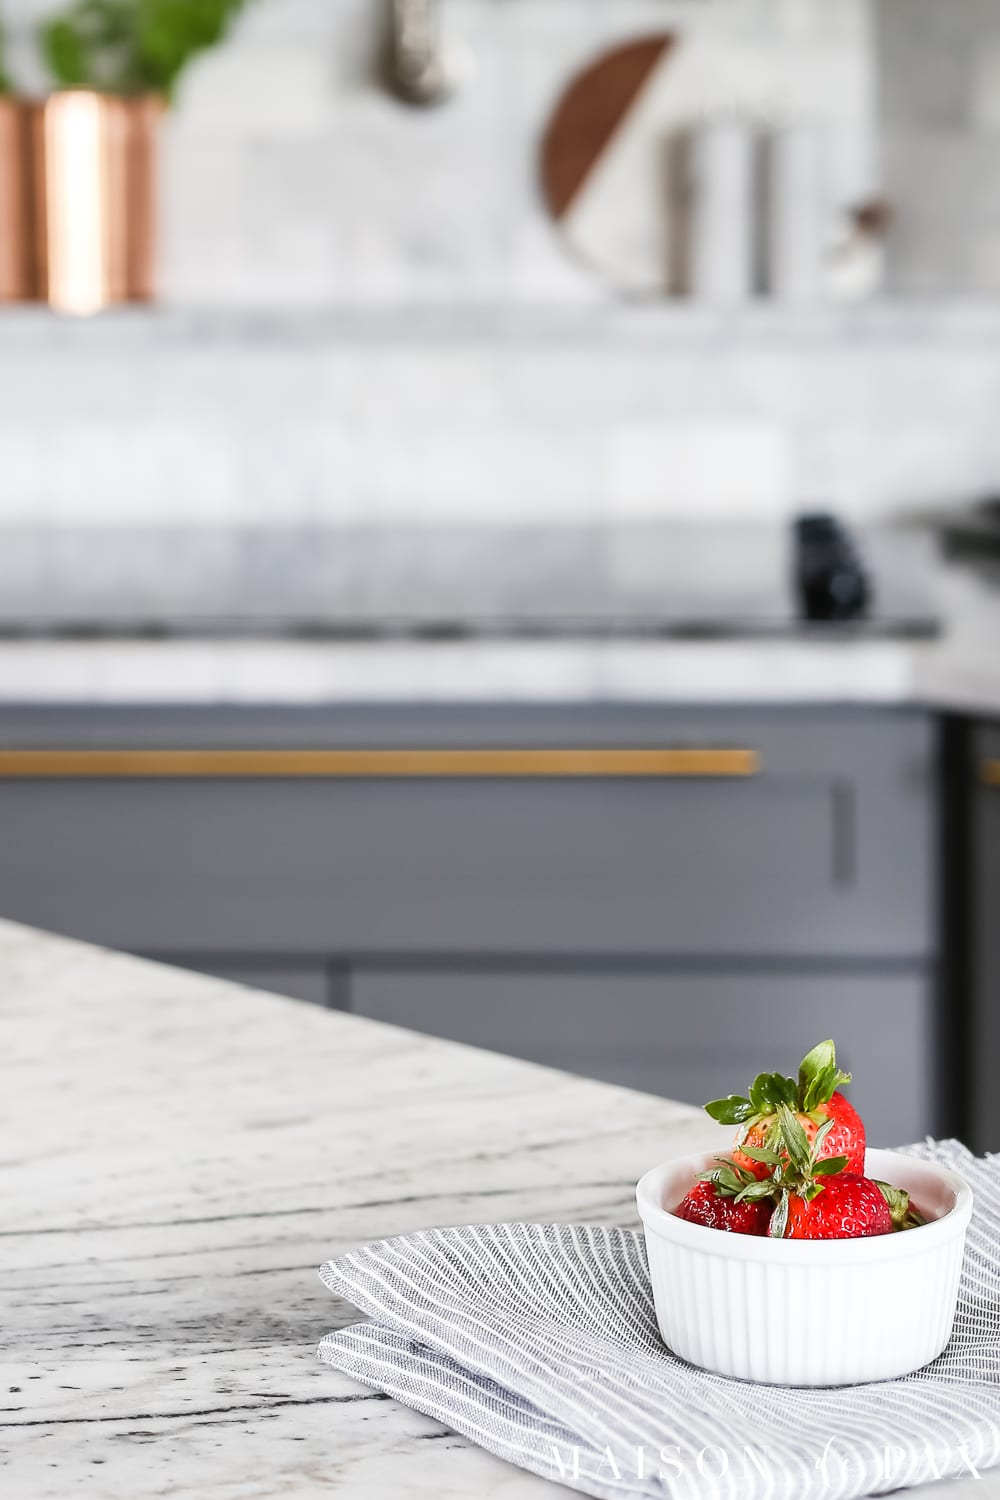 Decorating with seasonal produce: tips for refreshing your kitchen for spring without spending a fortune. #springkitchen #kitcheninspo #marblekitchen #kitchendesign #springdecor #springdecorating #kitchendecor #twotonekitchen